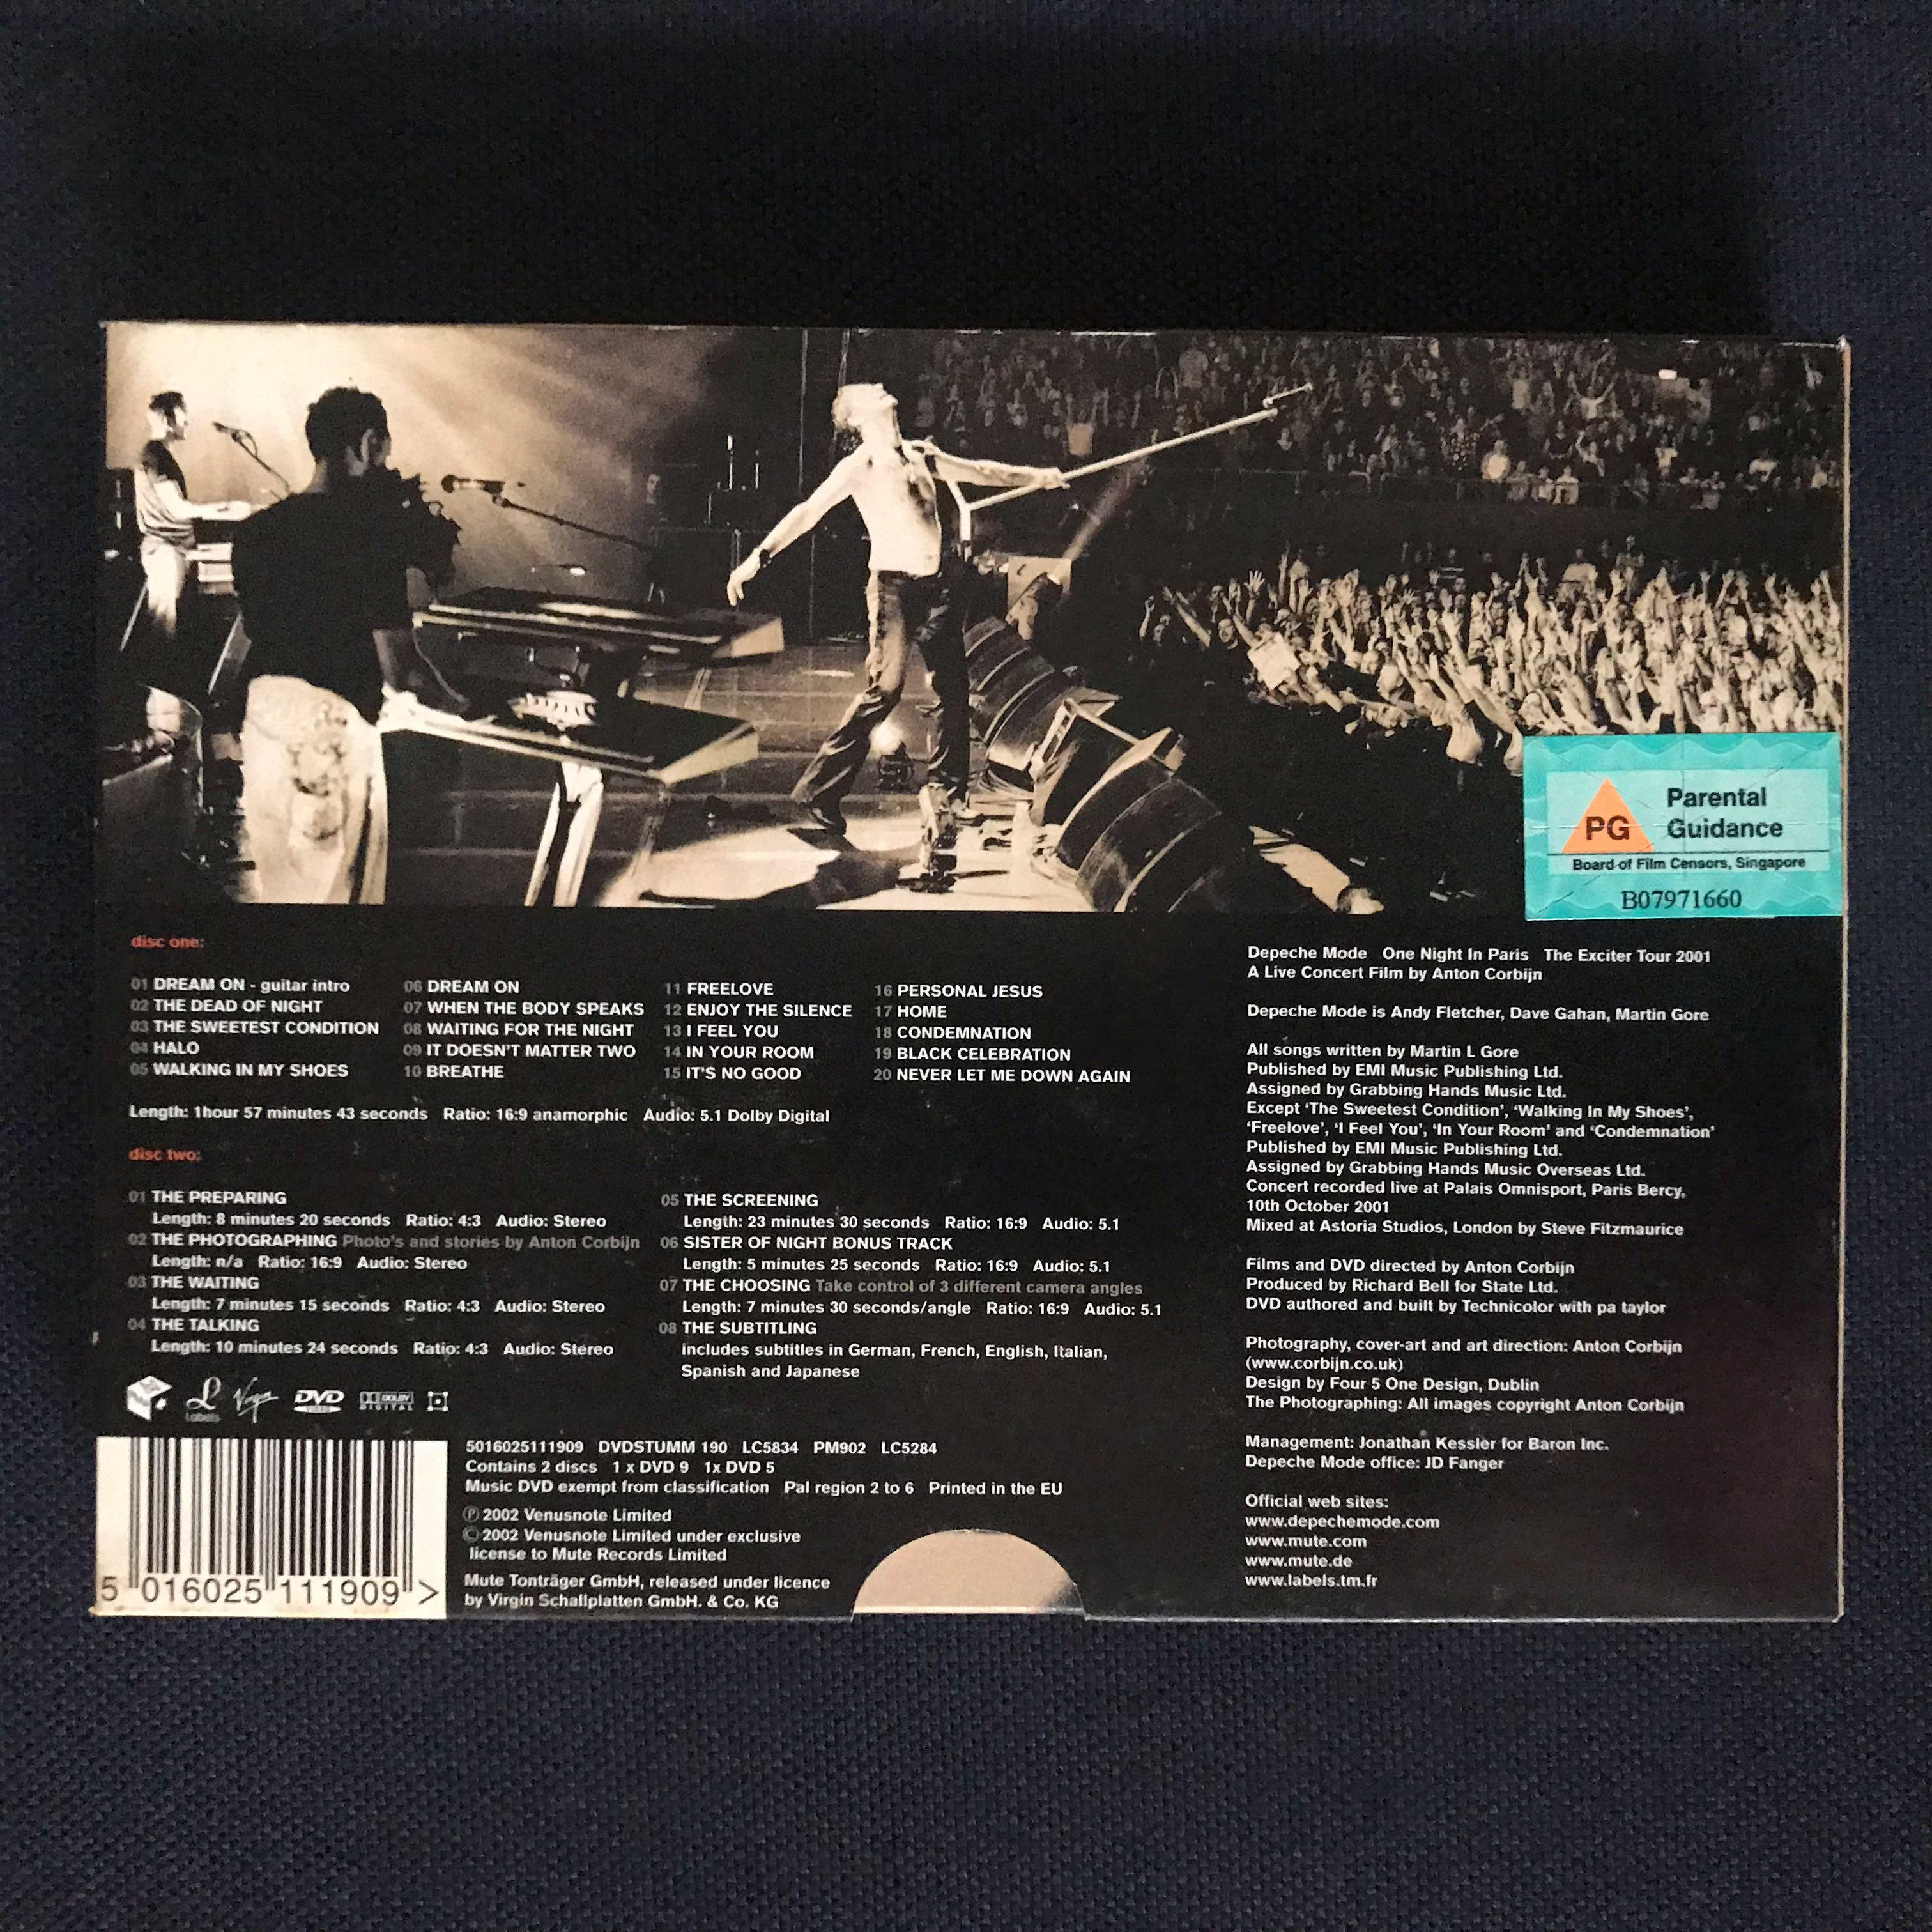 Depeche Mode One Night In Paris The Exciter Tour Dvd